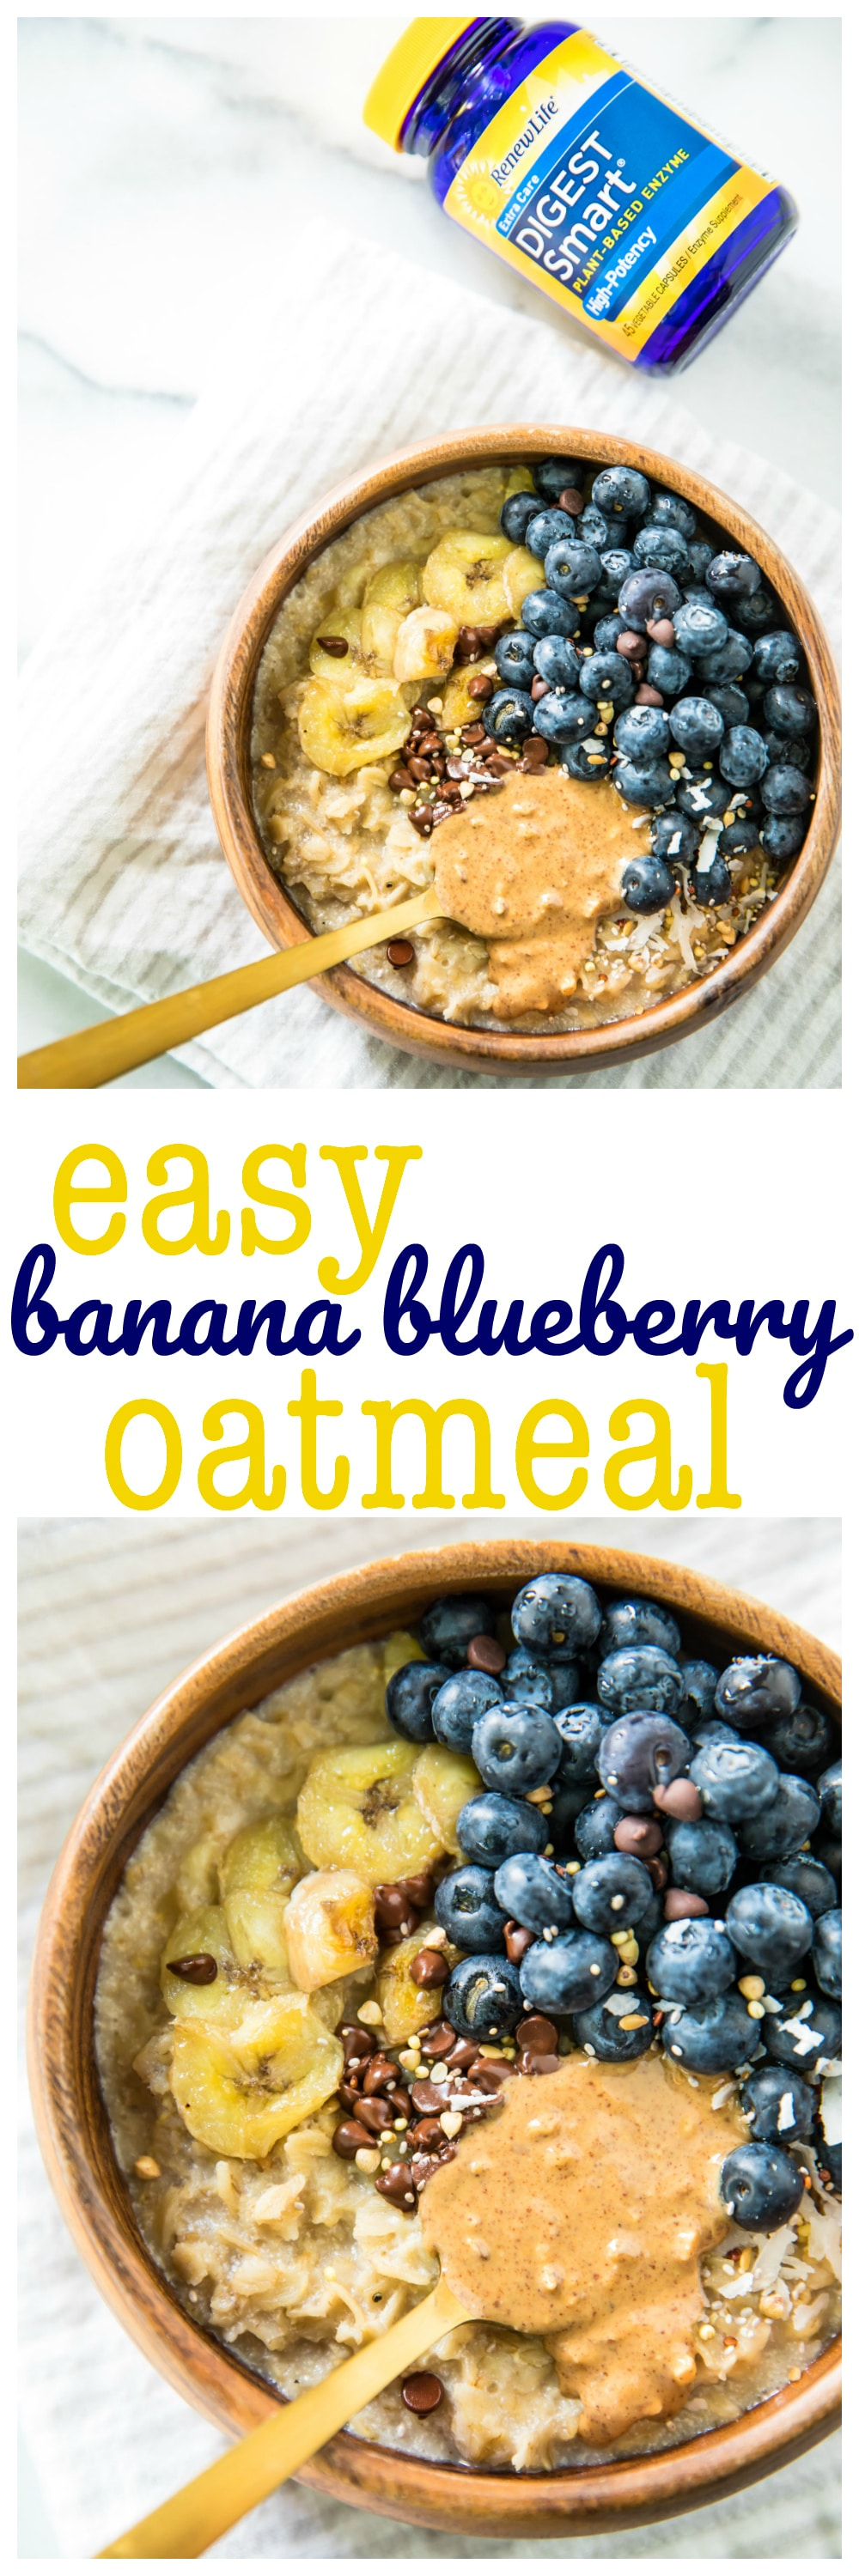 Treat yourself with a warm bowl of this delicious Easy Blueberry Banana Oatmeal! Healthy, super filling andready in under 10 minutes, it's the perfect breakfast recipe to fuel your morning.